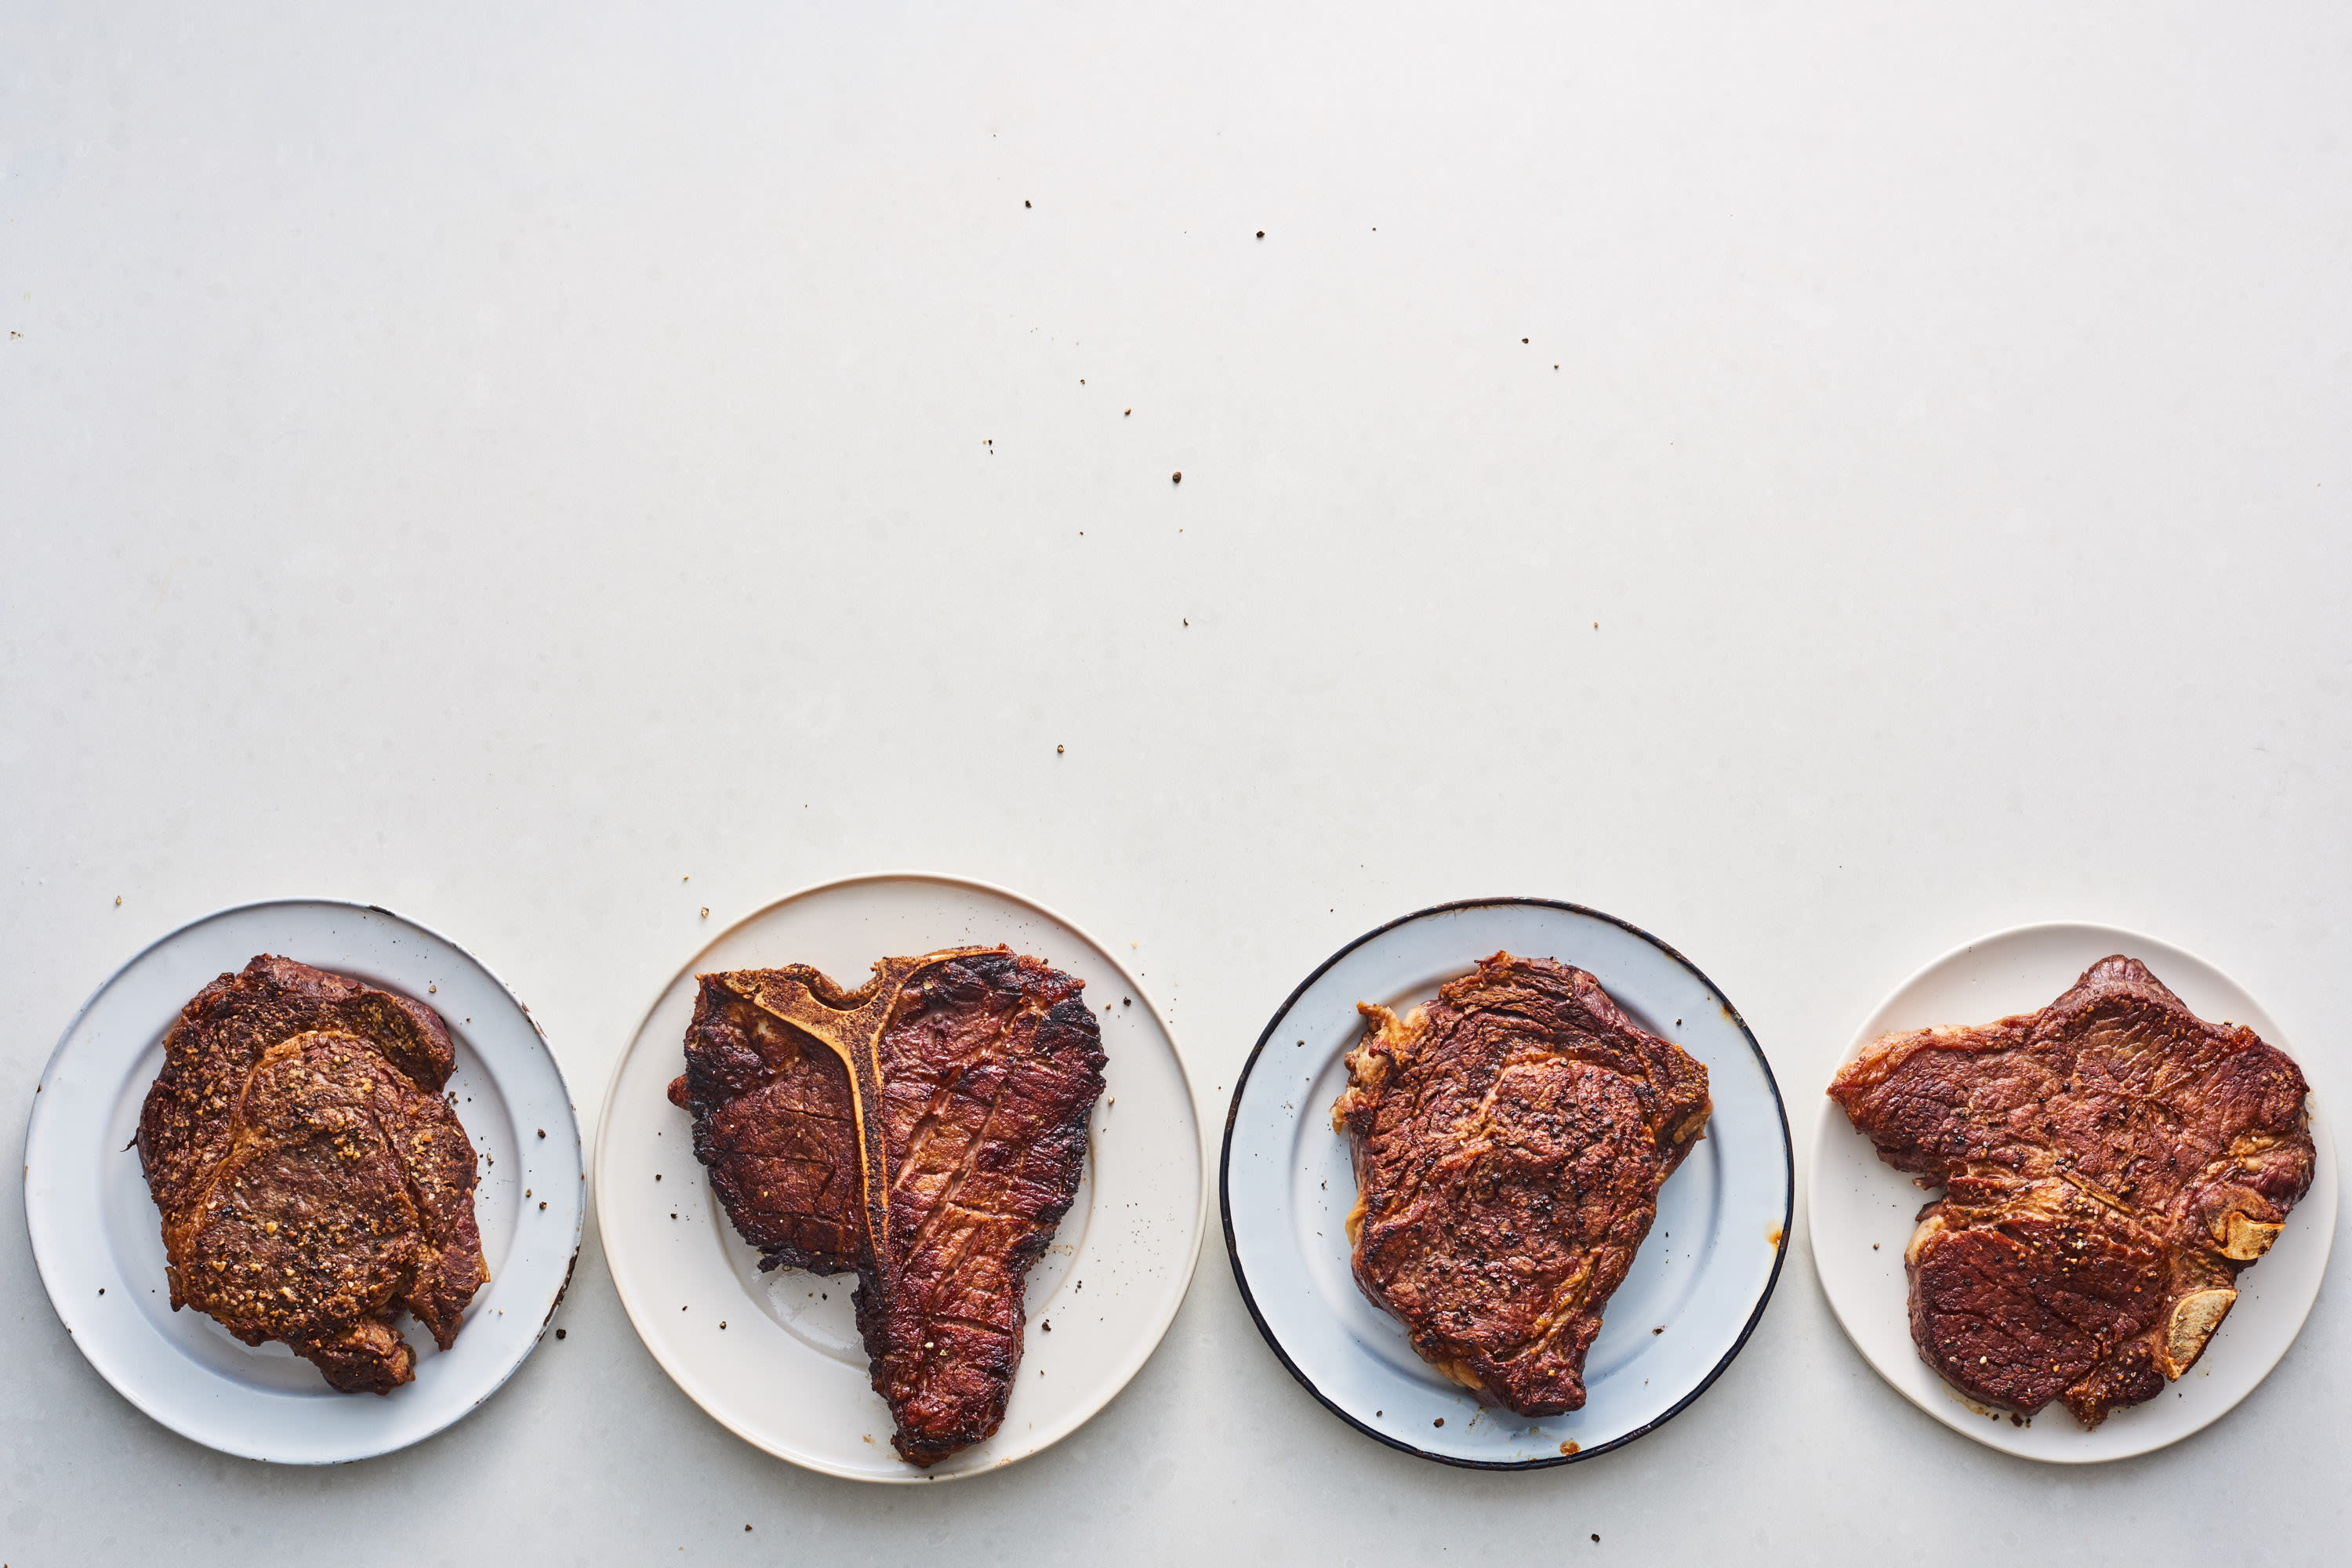 I Tested 4 Methods for Cooking Steak, and Here Is the Very Best